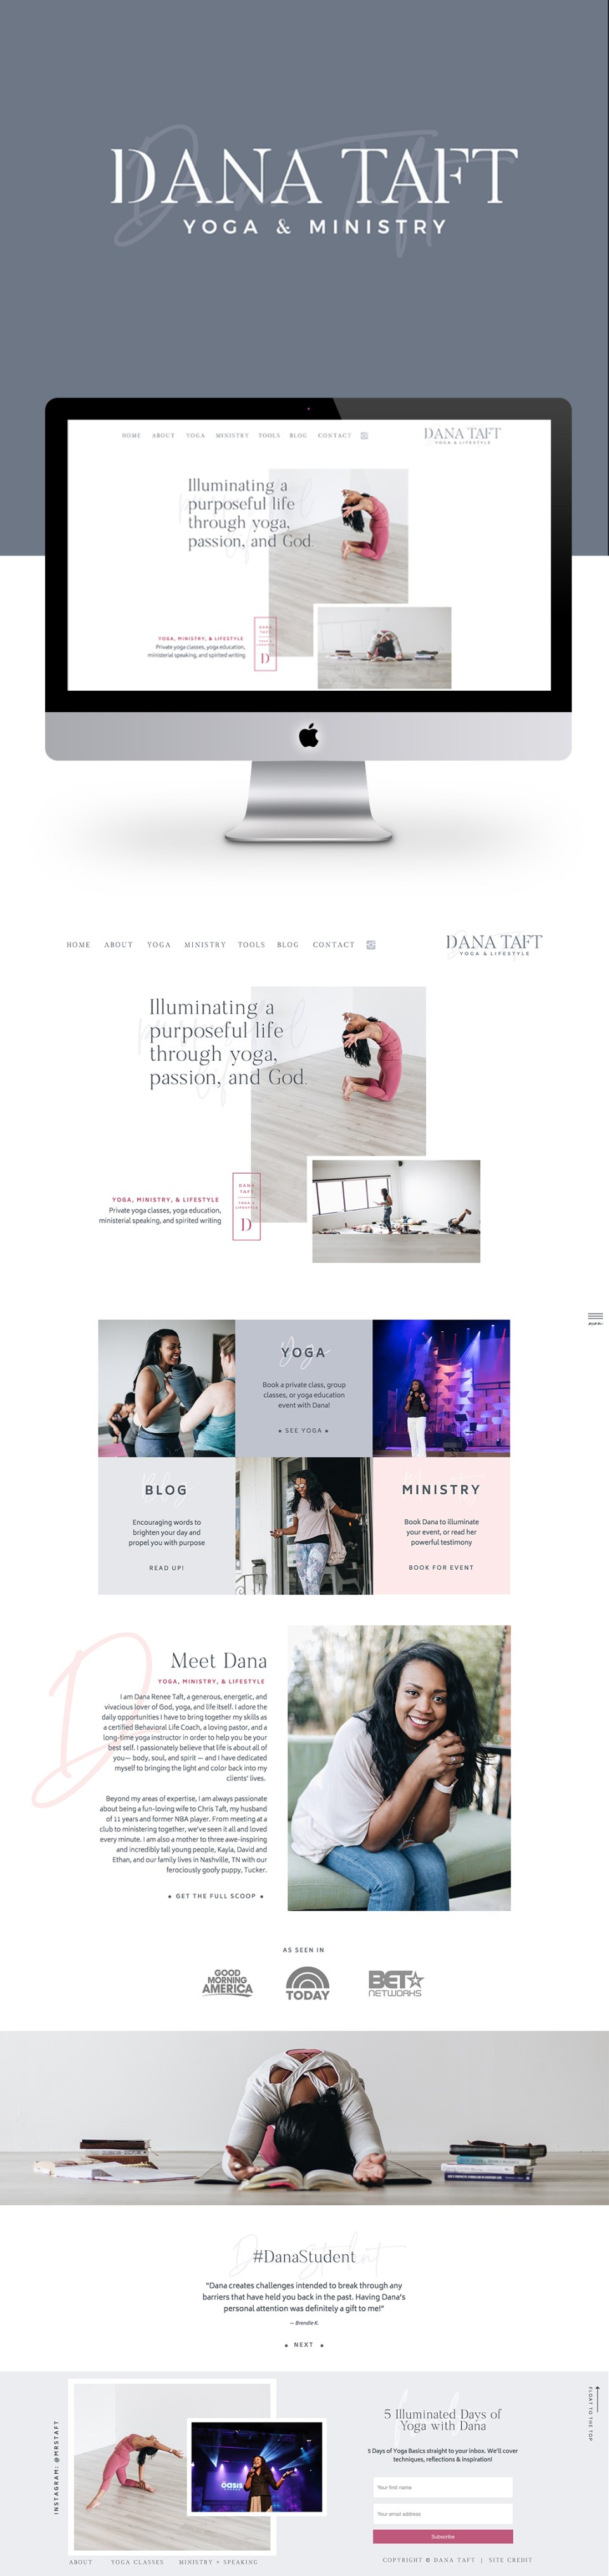 Dana Taft - Branding and Website Design by Elizabeth McCravy - Yoga Teacher Branding4